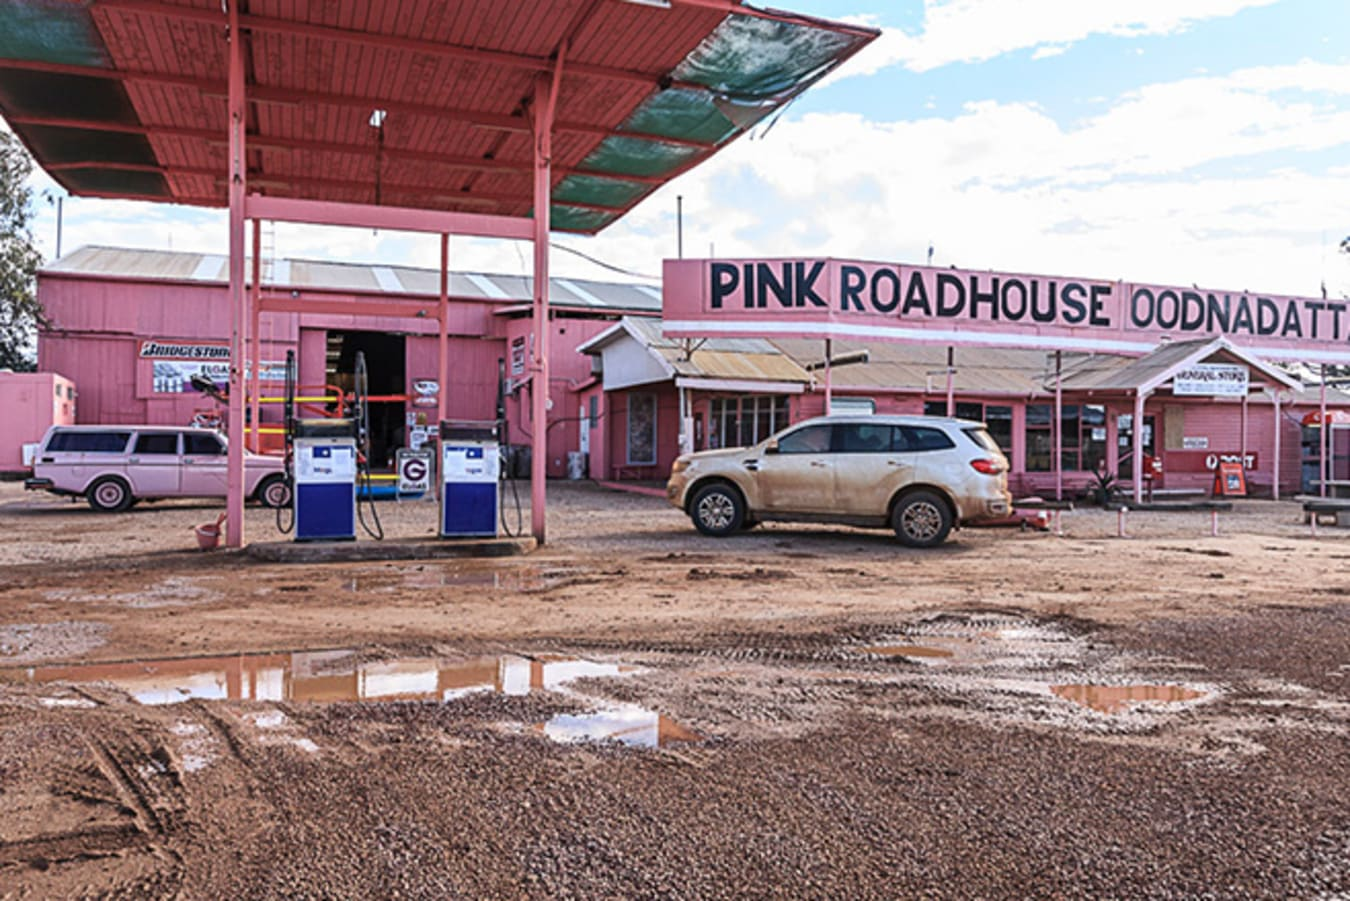 Ford Everest refuelling at Pink Roadhouse